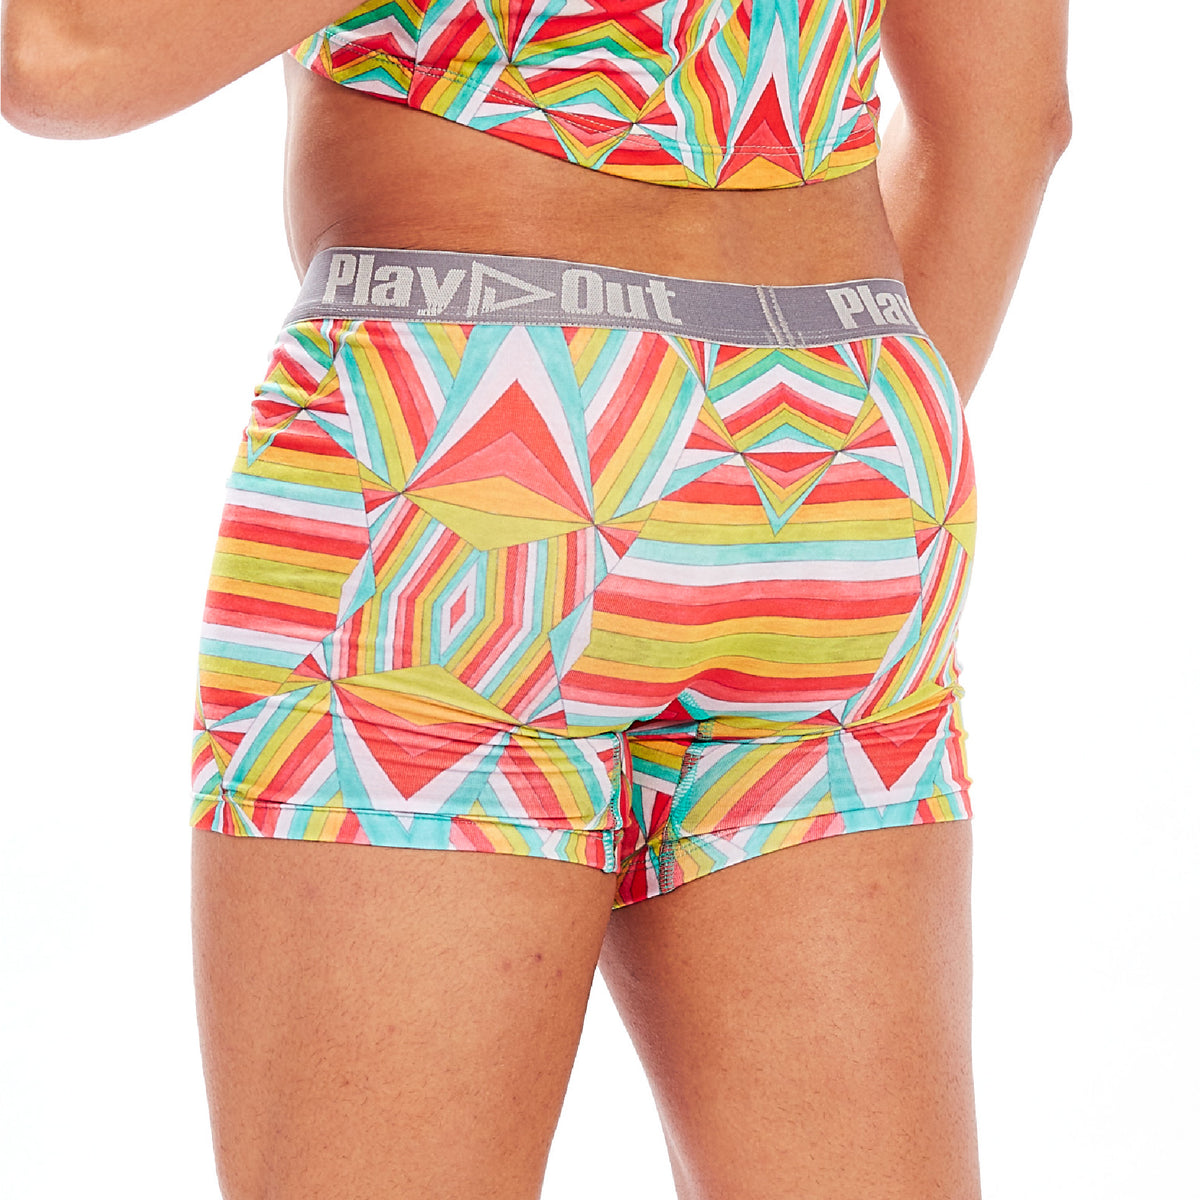 Play Out Apparel gender equal Midi Trunk underwear in Mazie multi color print S-5X back